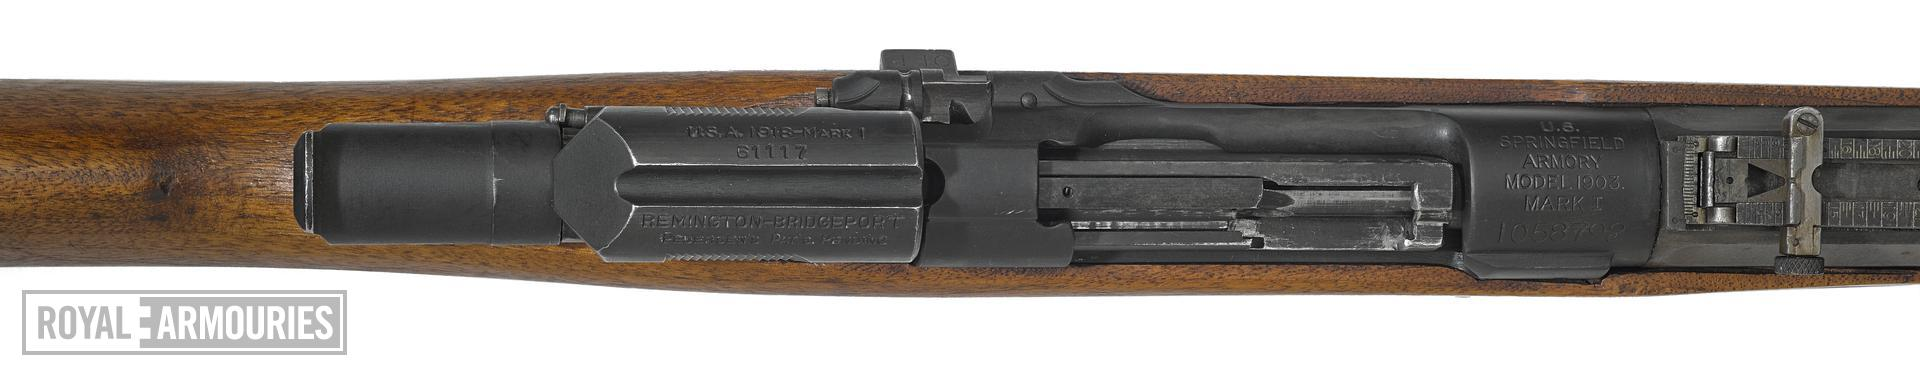 Model of 1903 Mark 1 Springfield rifle with Pedersen Device and M1905 bayonet - Arms of the First World War